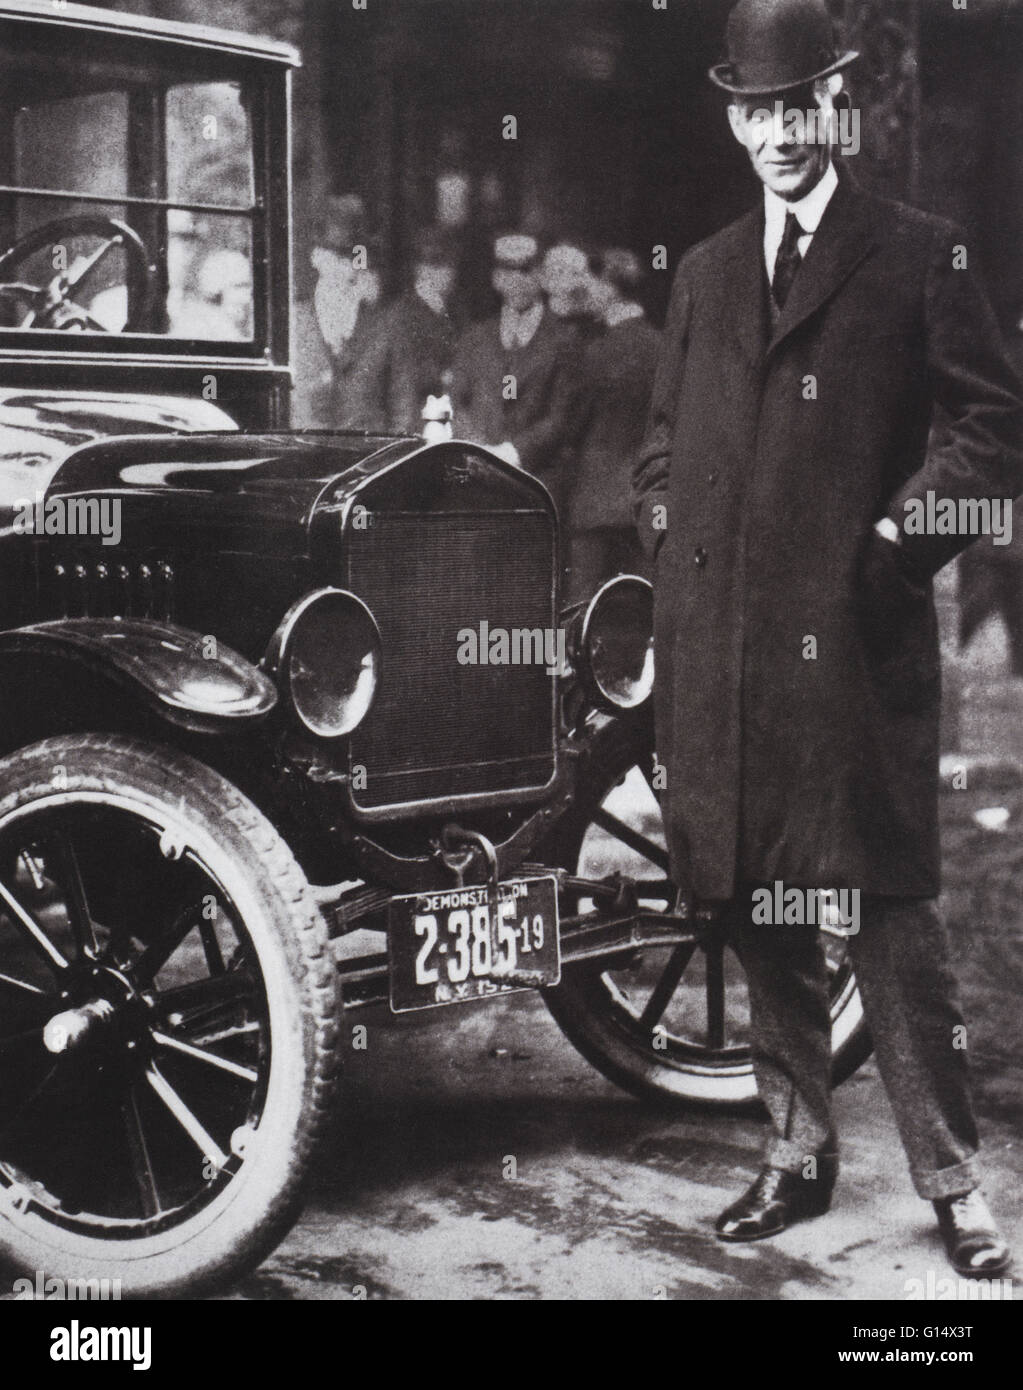 Henry Ford (July 30, 1863 - April 7, 1947) was an American industrialist, the founder of the Ford Motor Company, - Stock Image